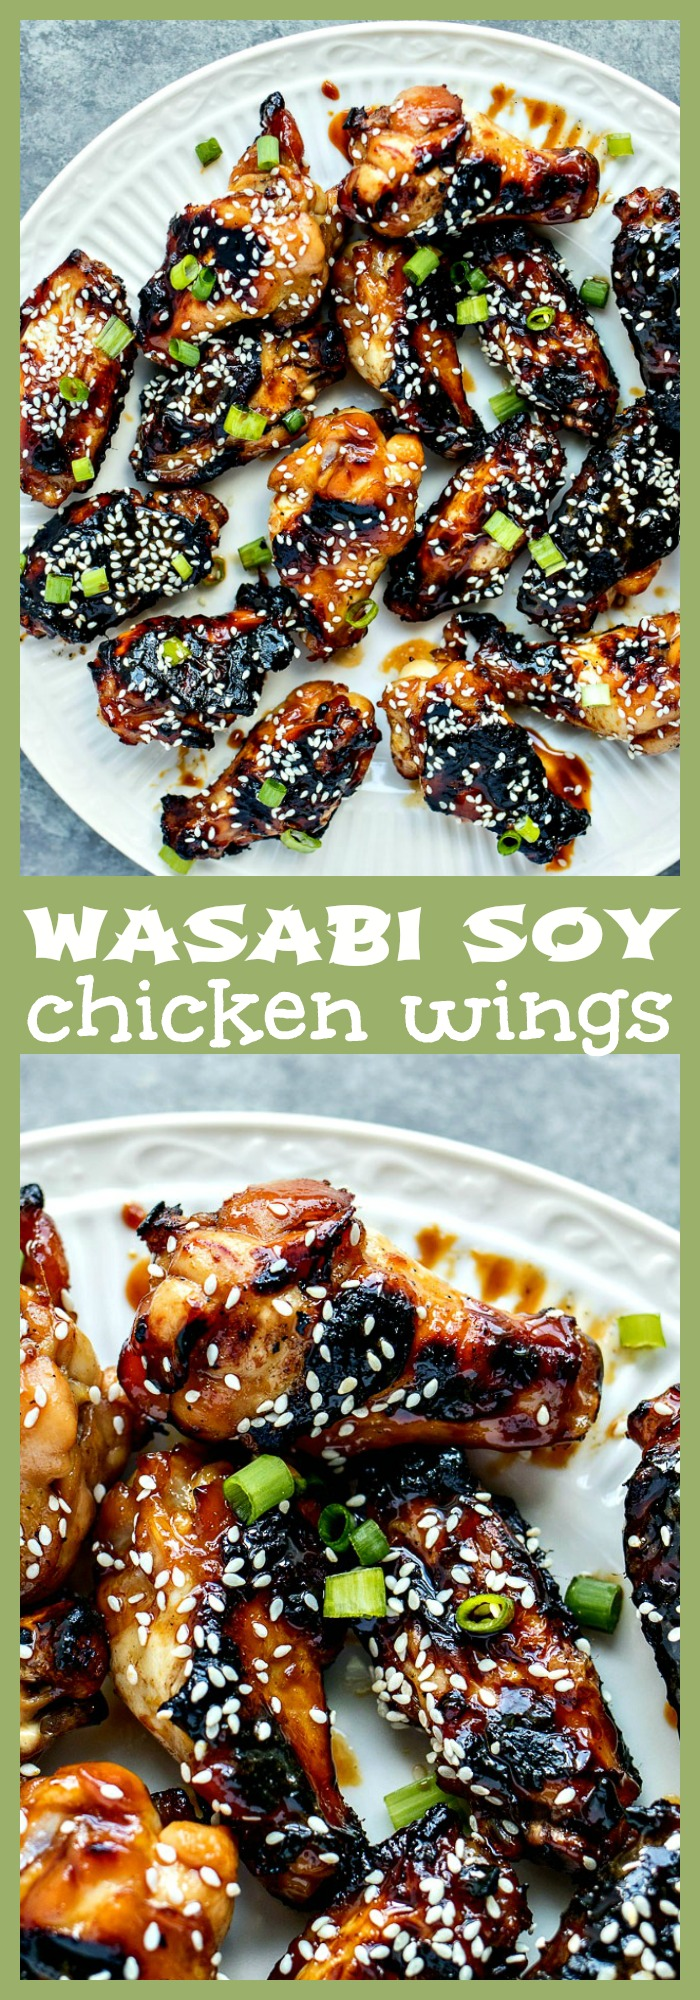 Wasabi Soy Wings photo collage